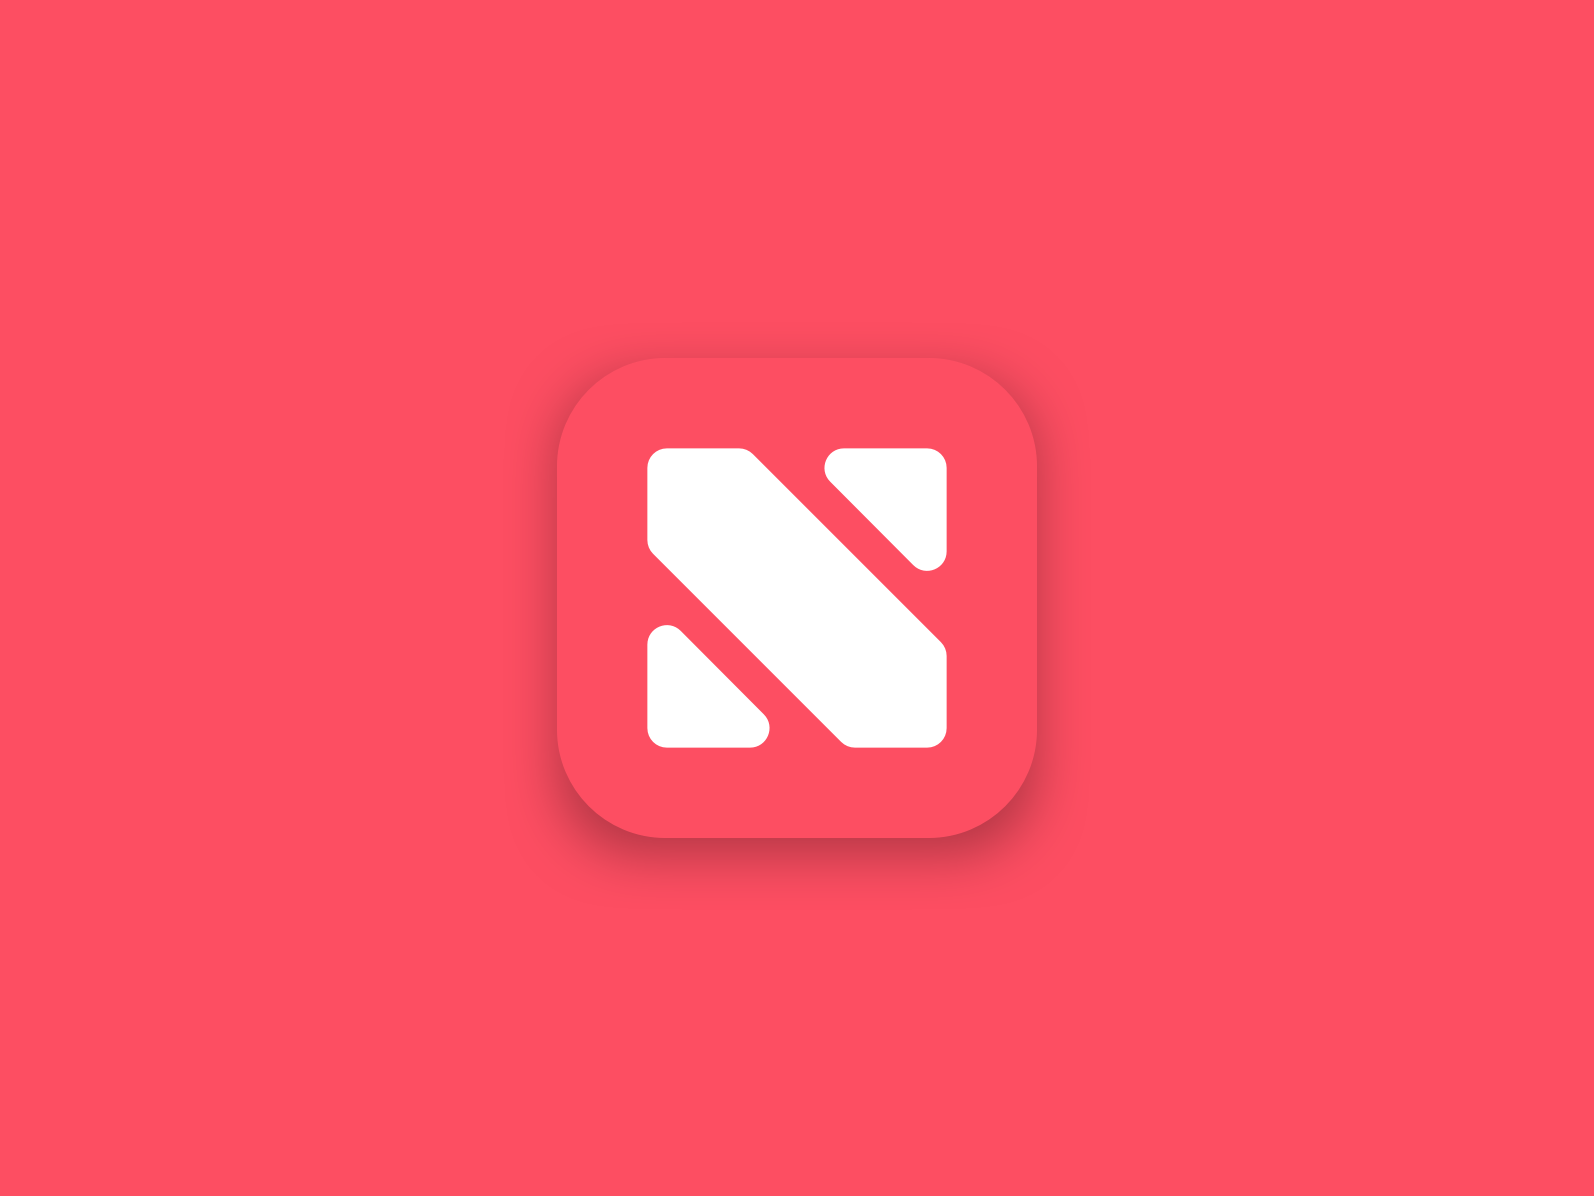 Apple News Icon by Damian Kidd on Dribbble.